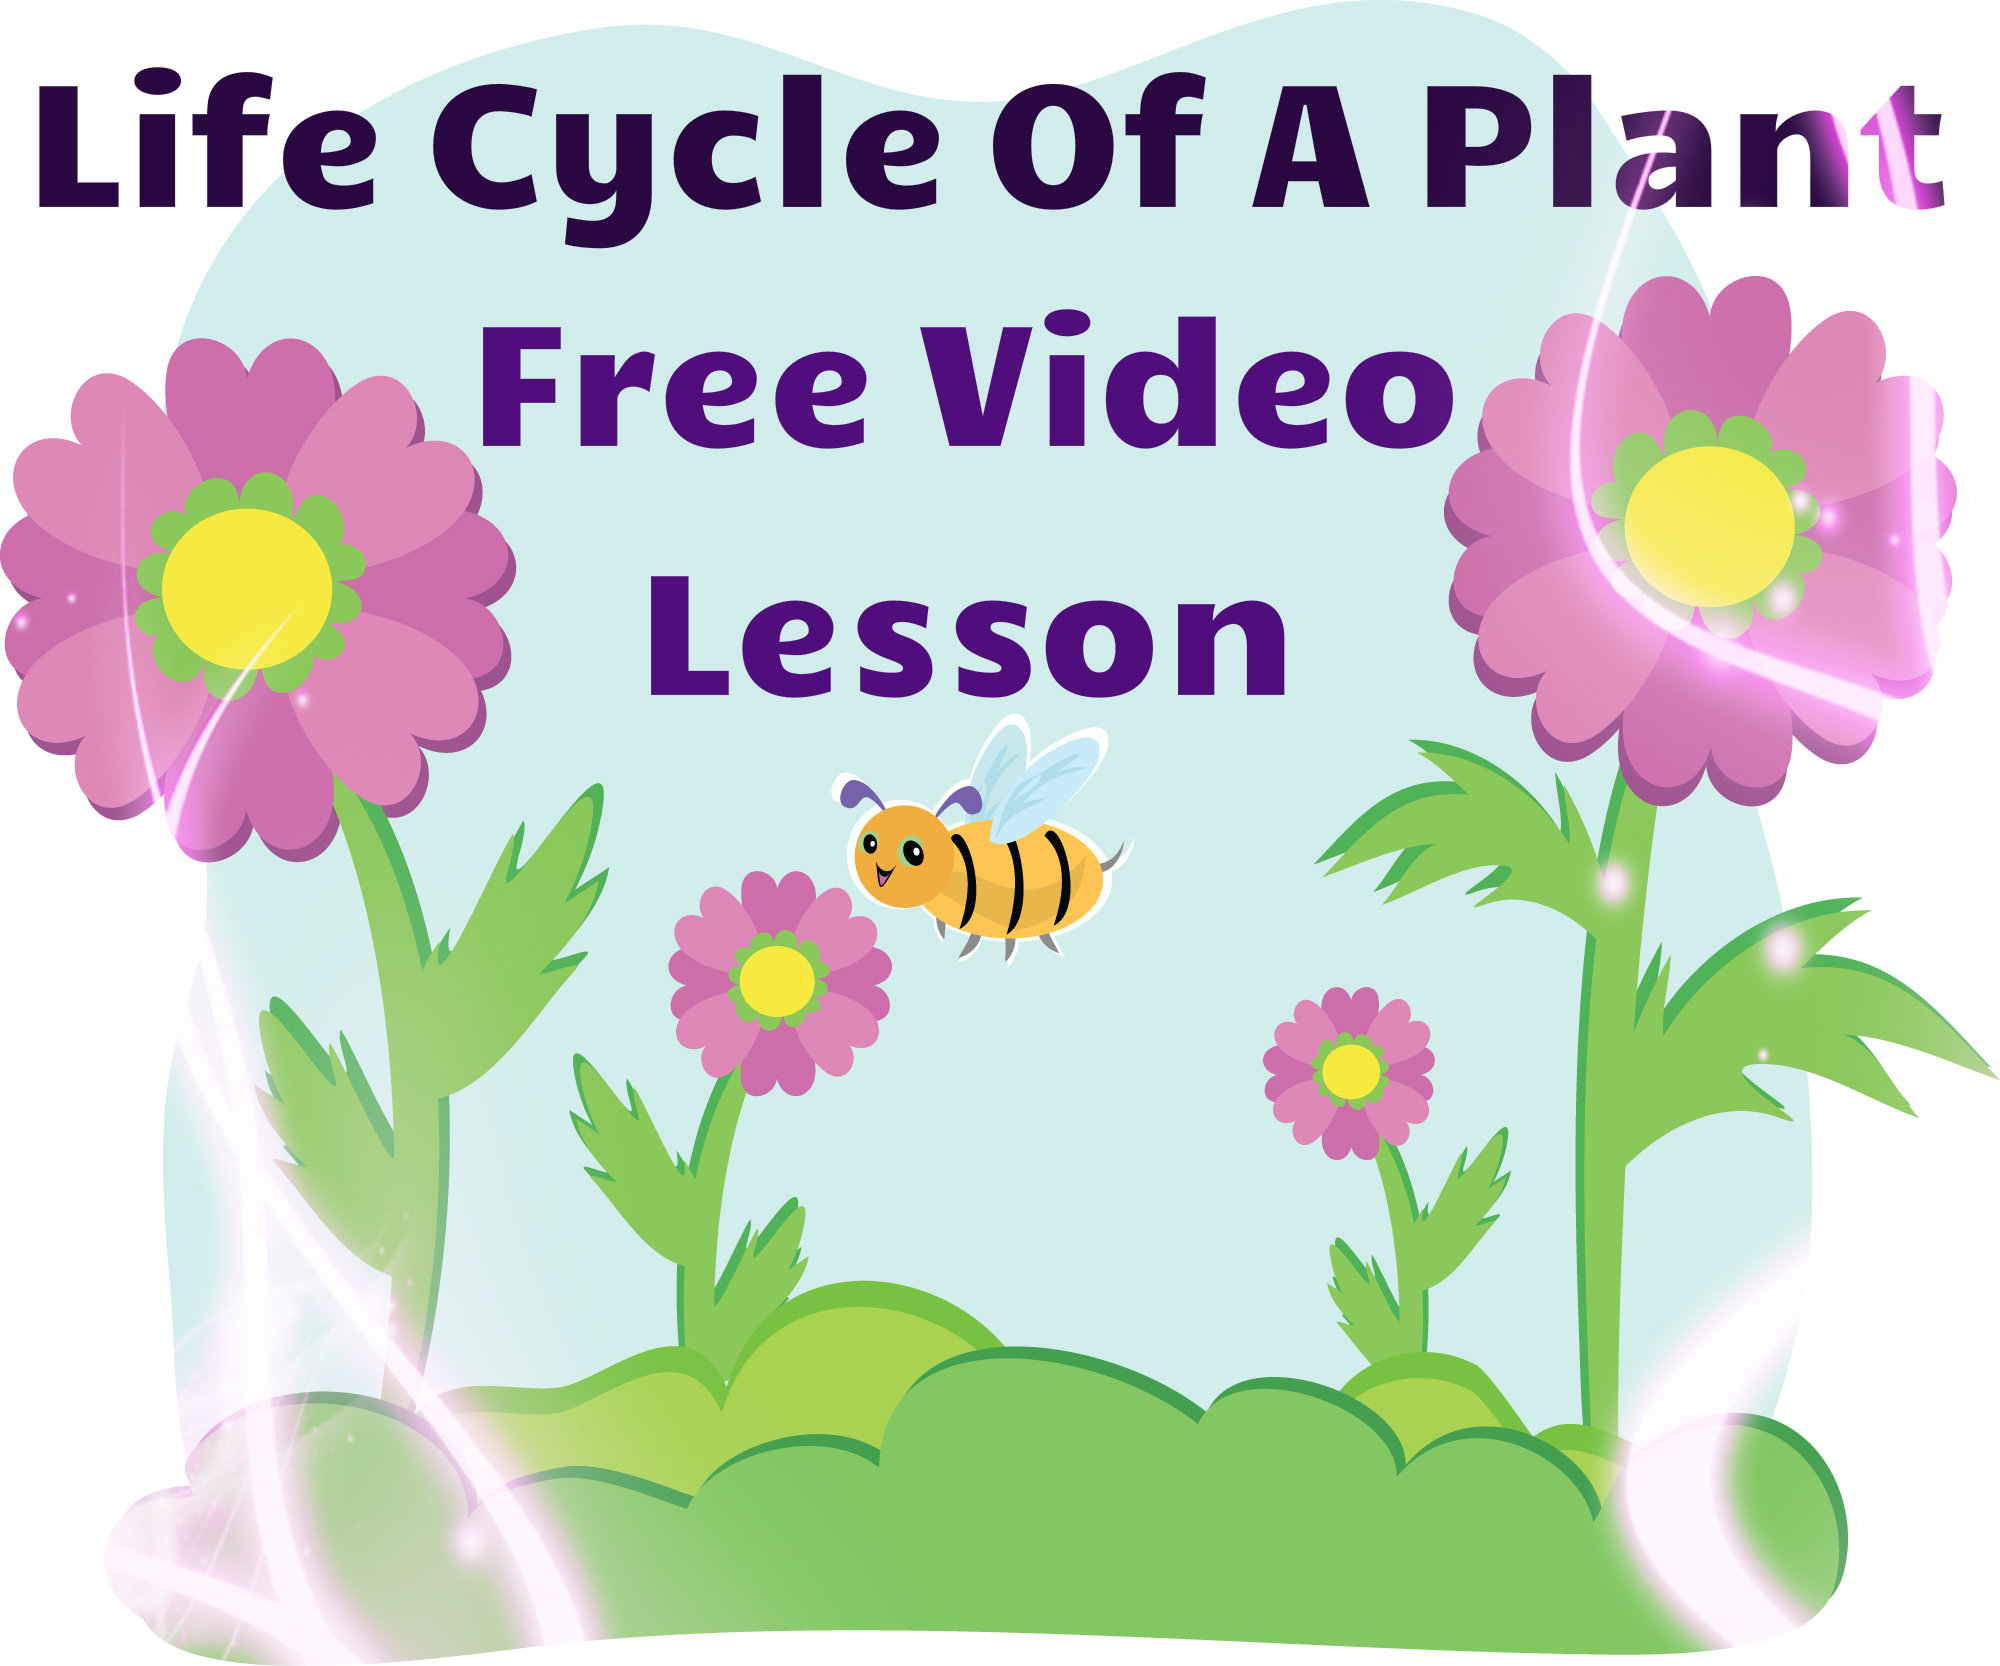 Plant Life Cycle Lesson